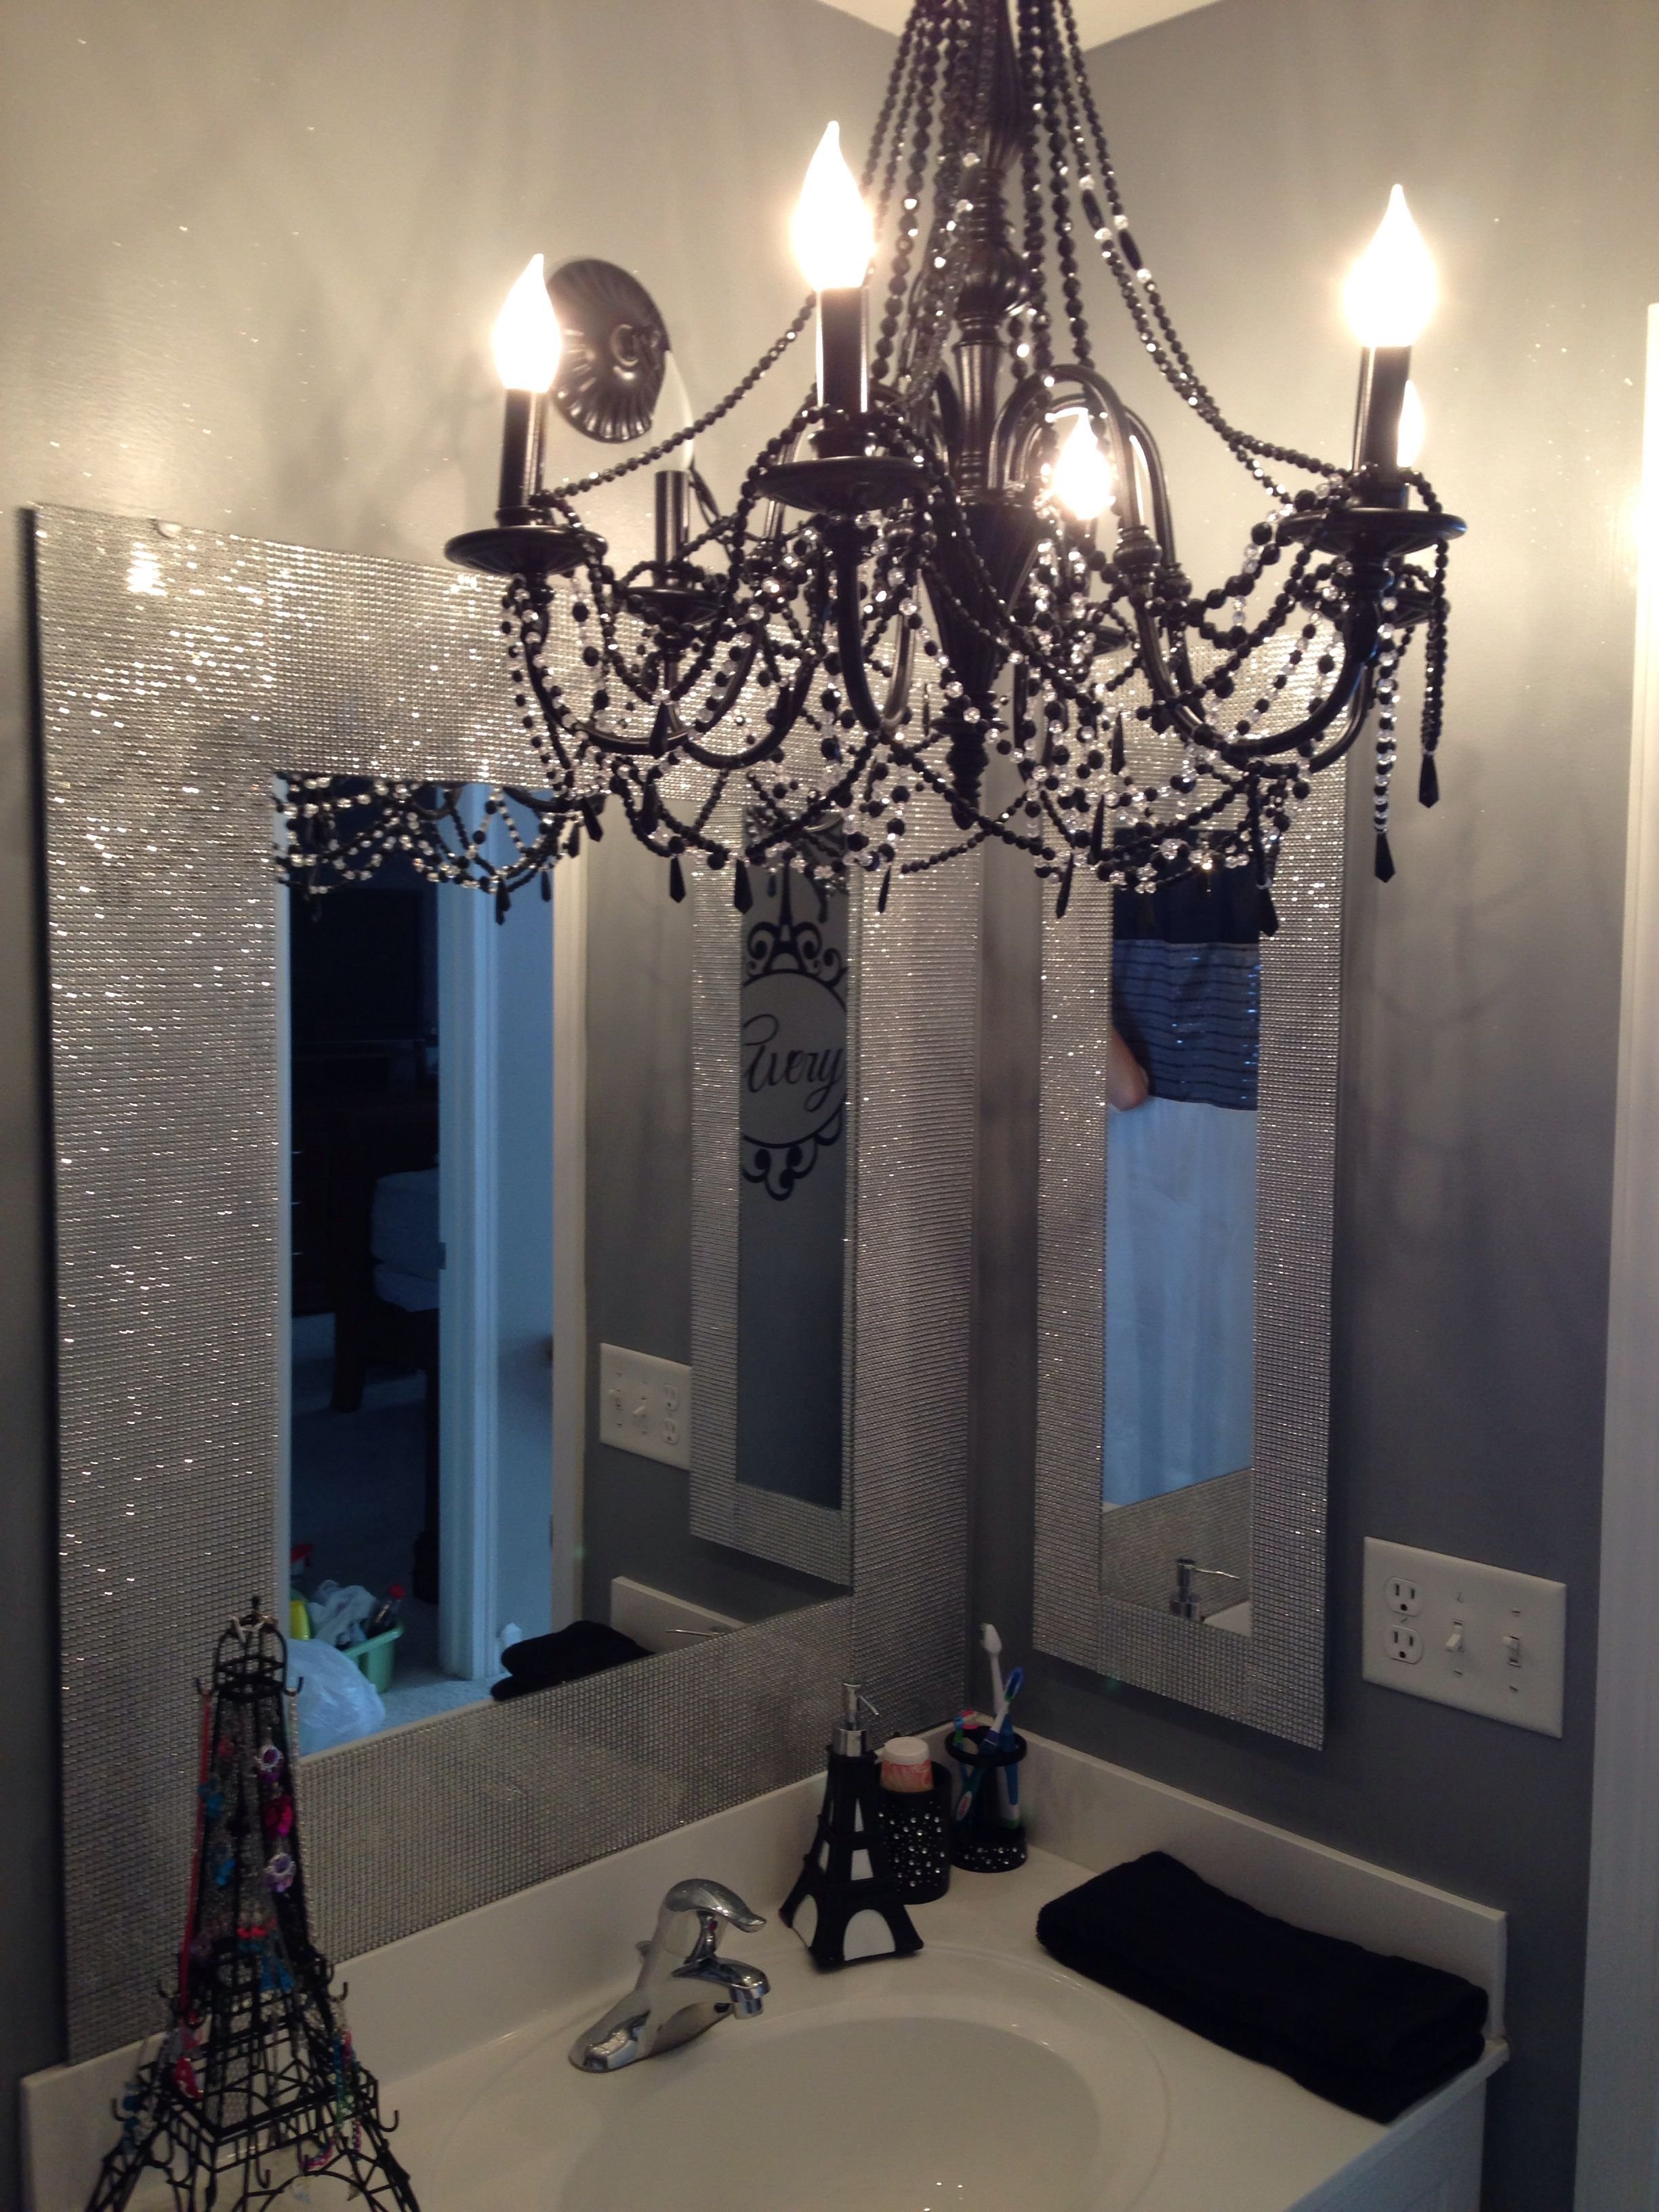 Diy Mirrors Rolls Of Faux Diamonds Added To Existing Mirror And Medicine Cabinet Bathroom Themes Paris Theme Bathroom Paris Themed Bathroom